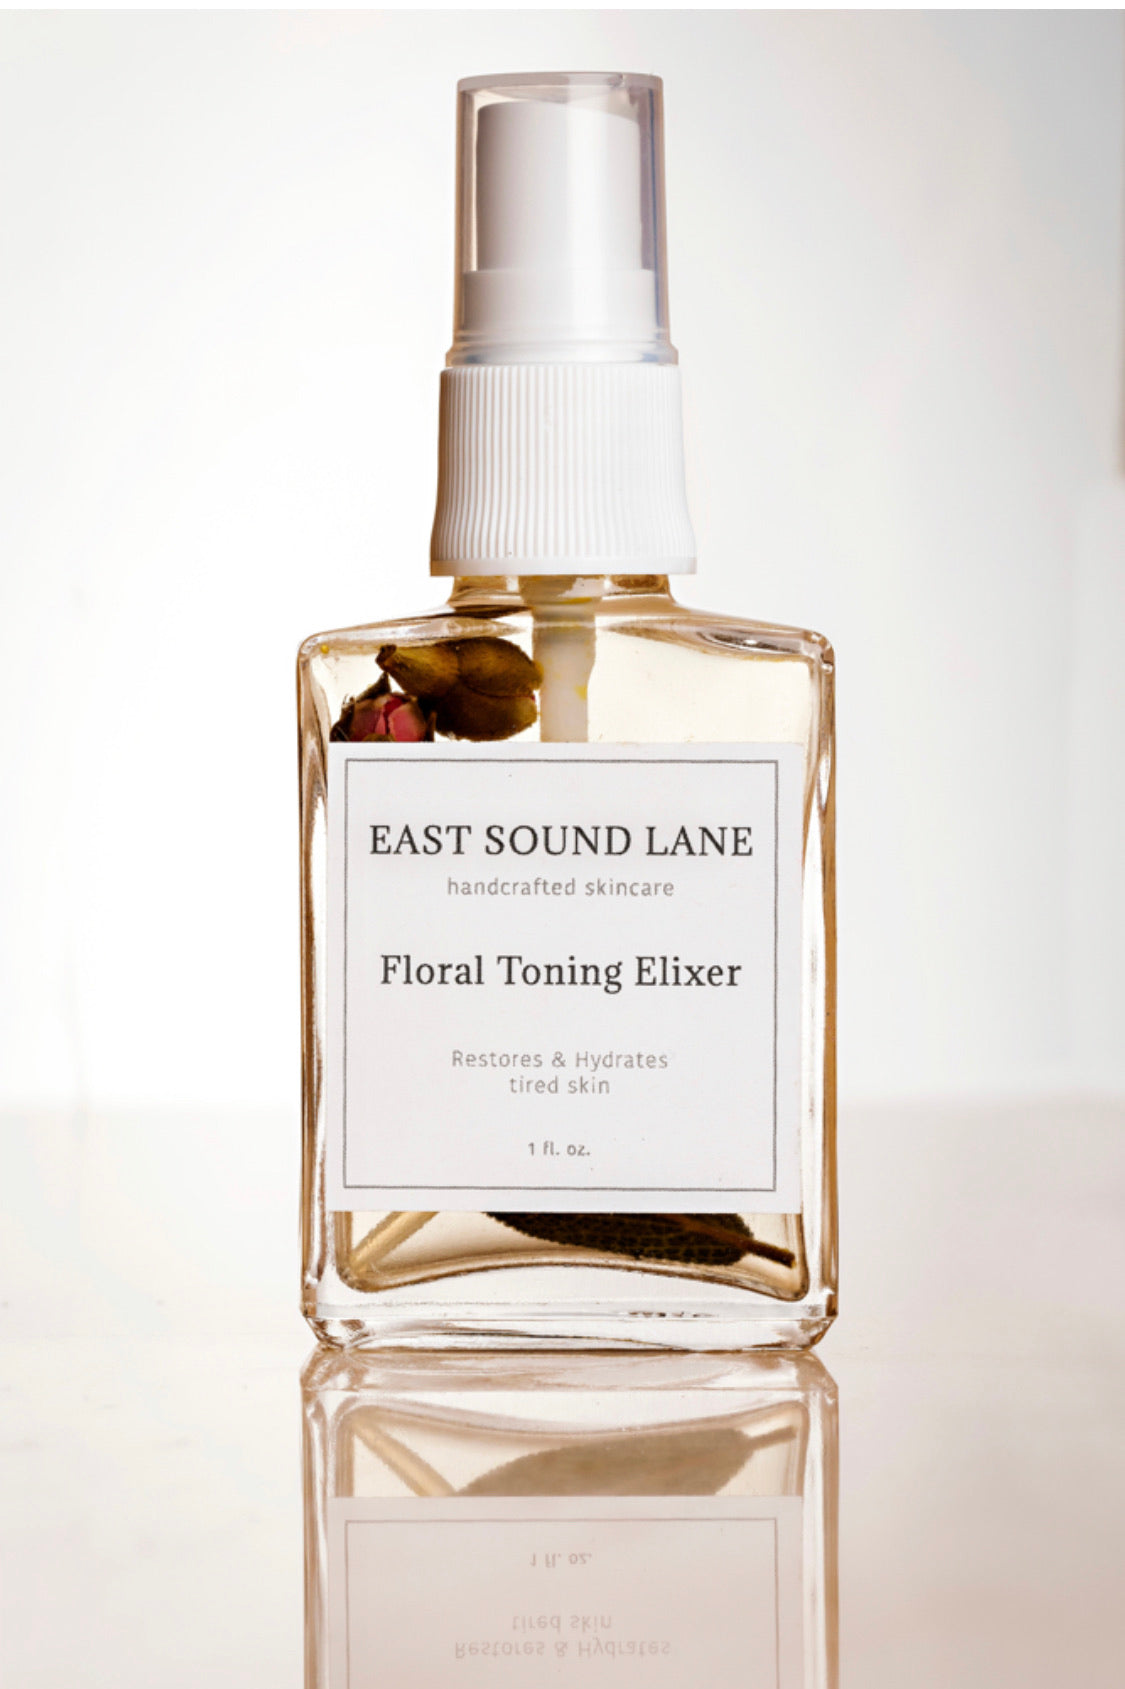 Floral Toning Elixir with Rose infused Witch Hazel & Garden Sage